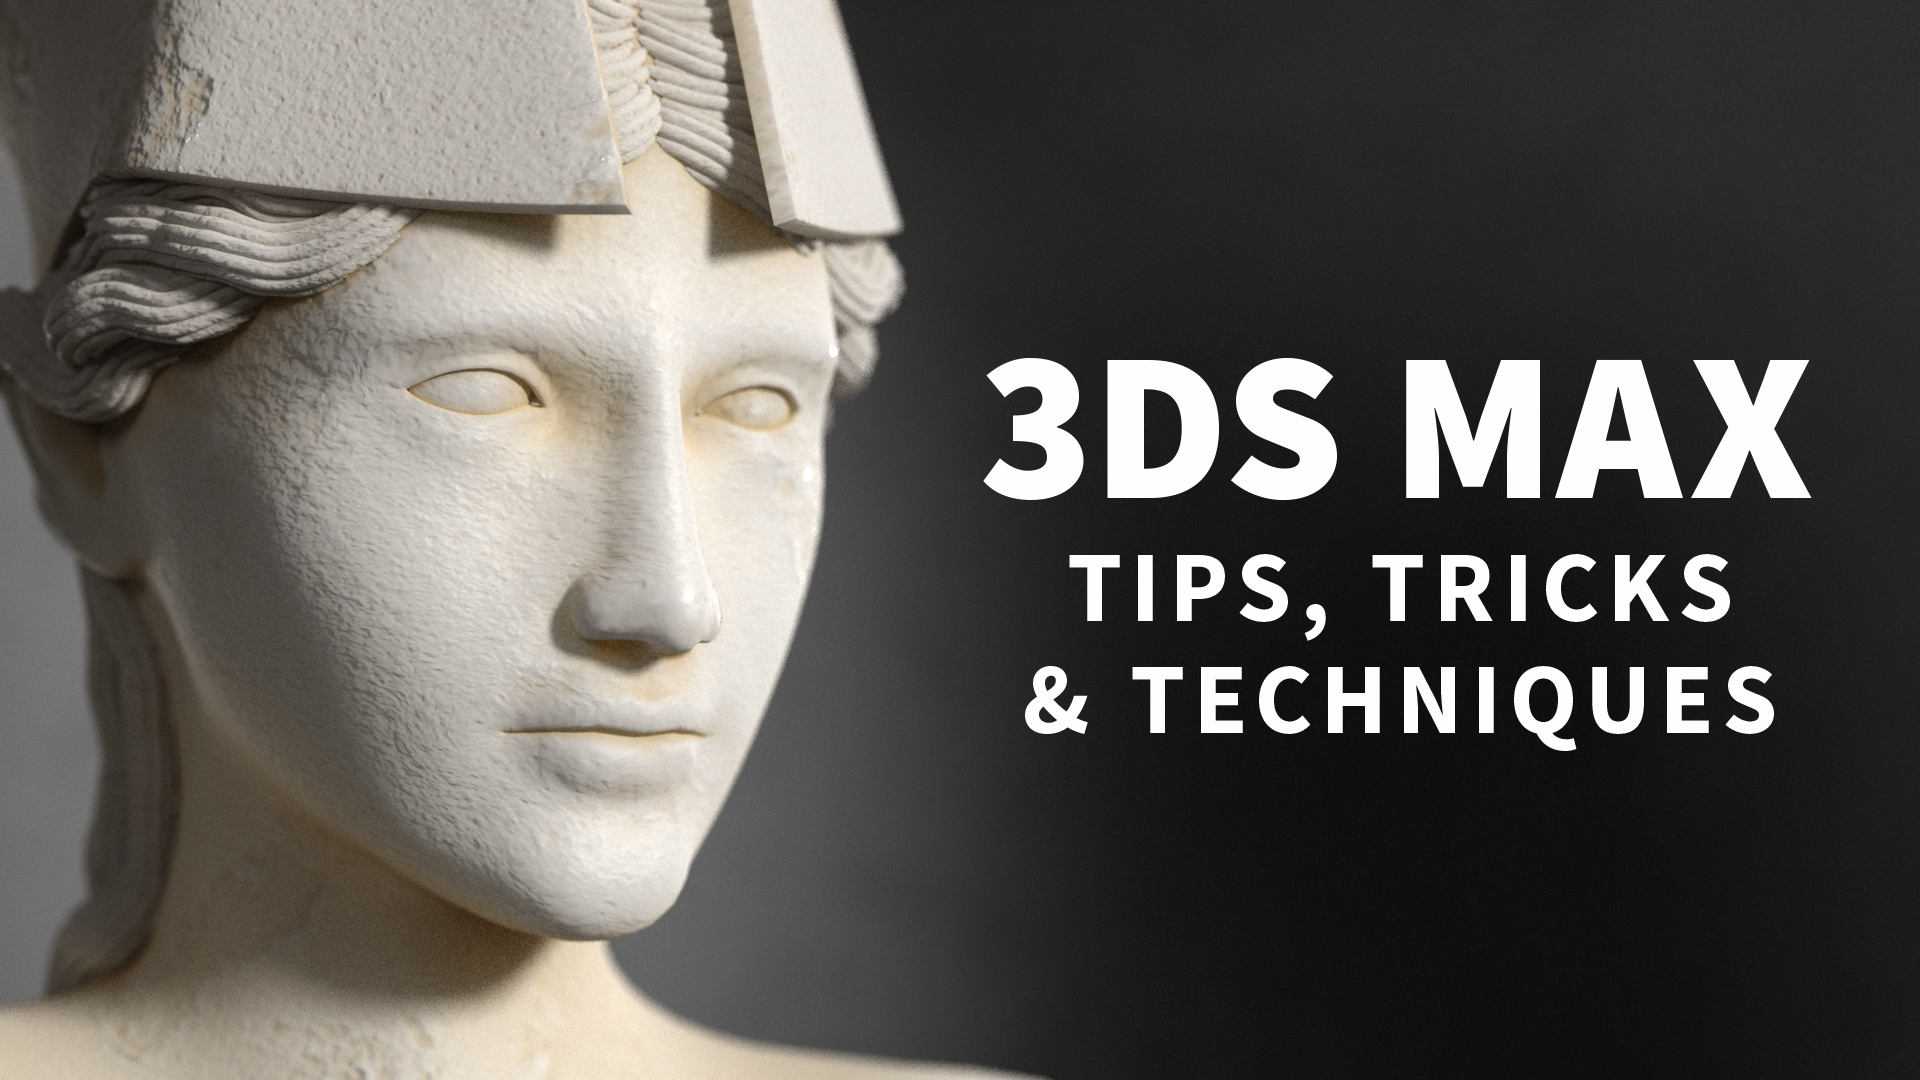 3ds Max: Tips, Tricks and Techniques